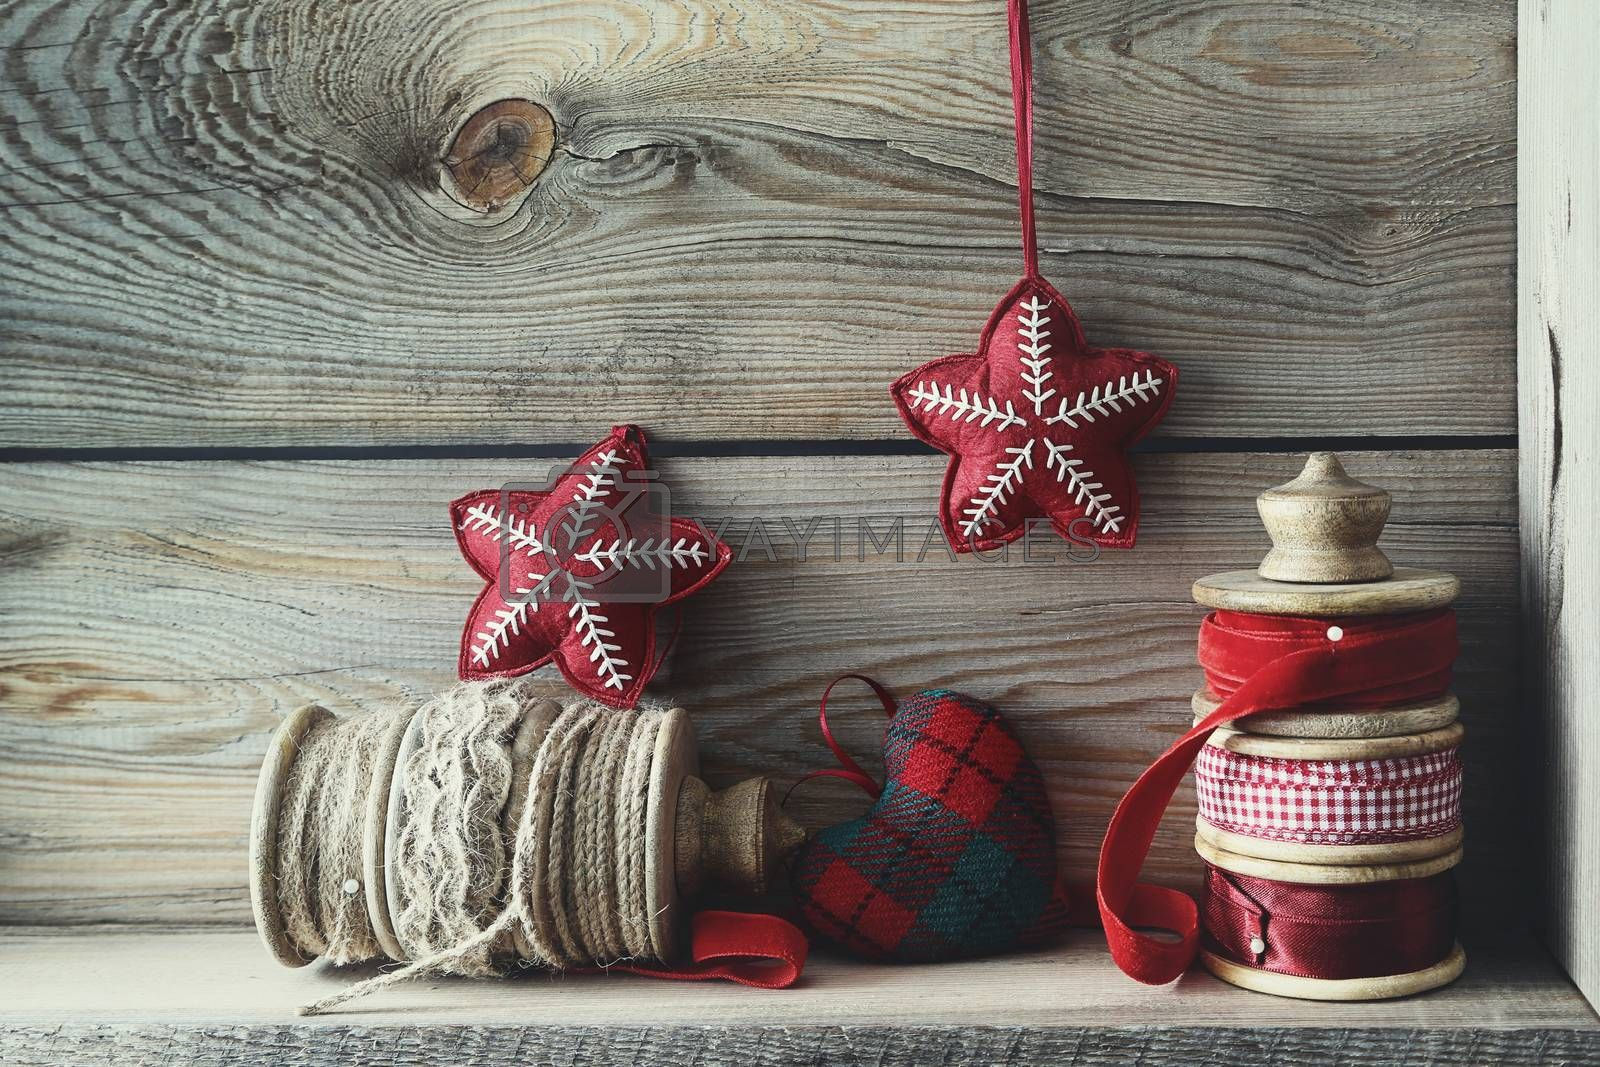 Ribbons and holiday ornaments on wood shelf